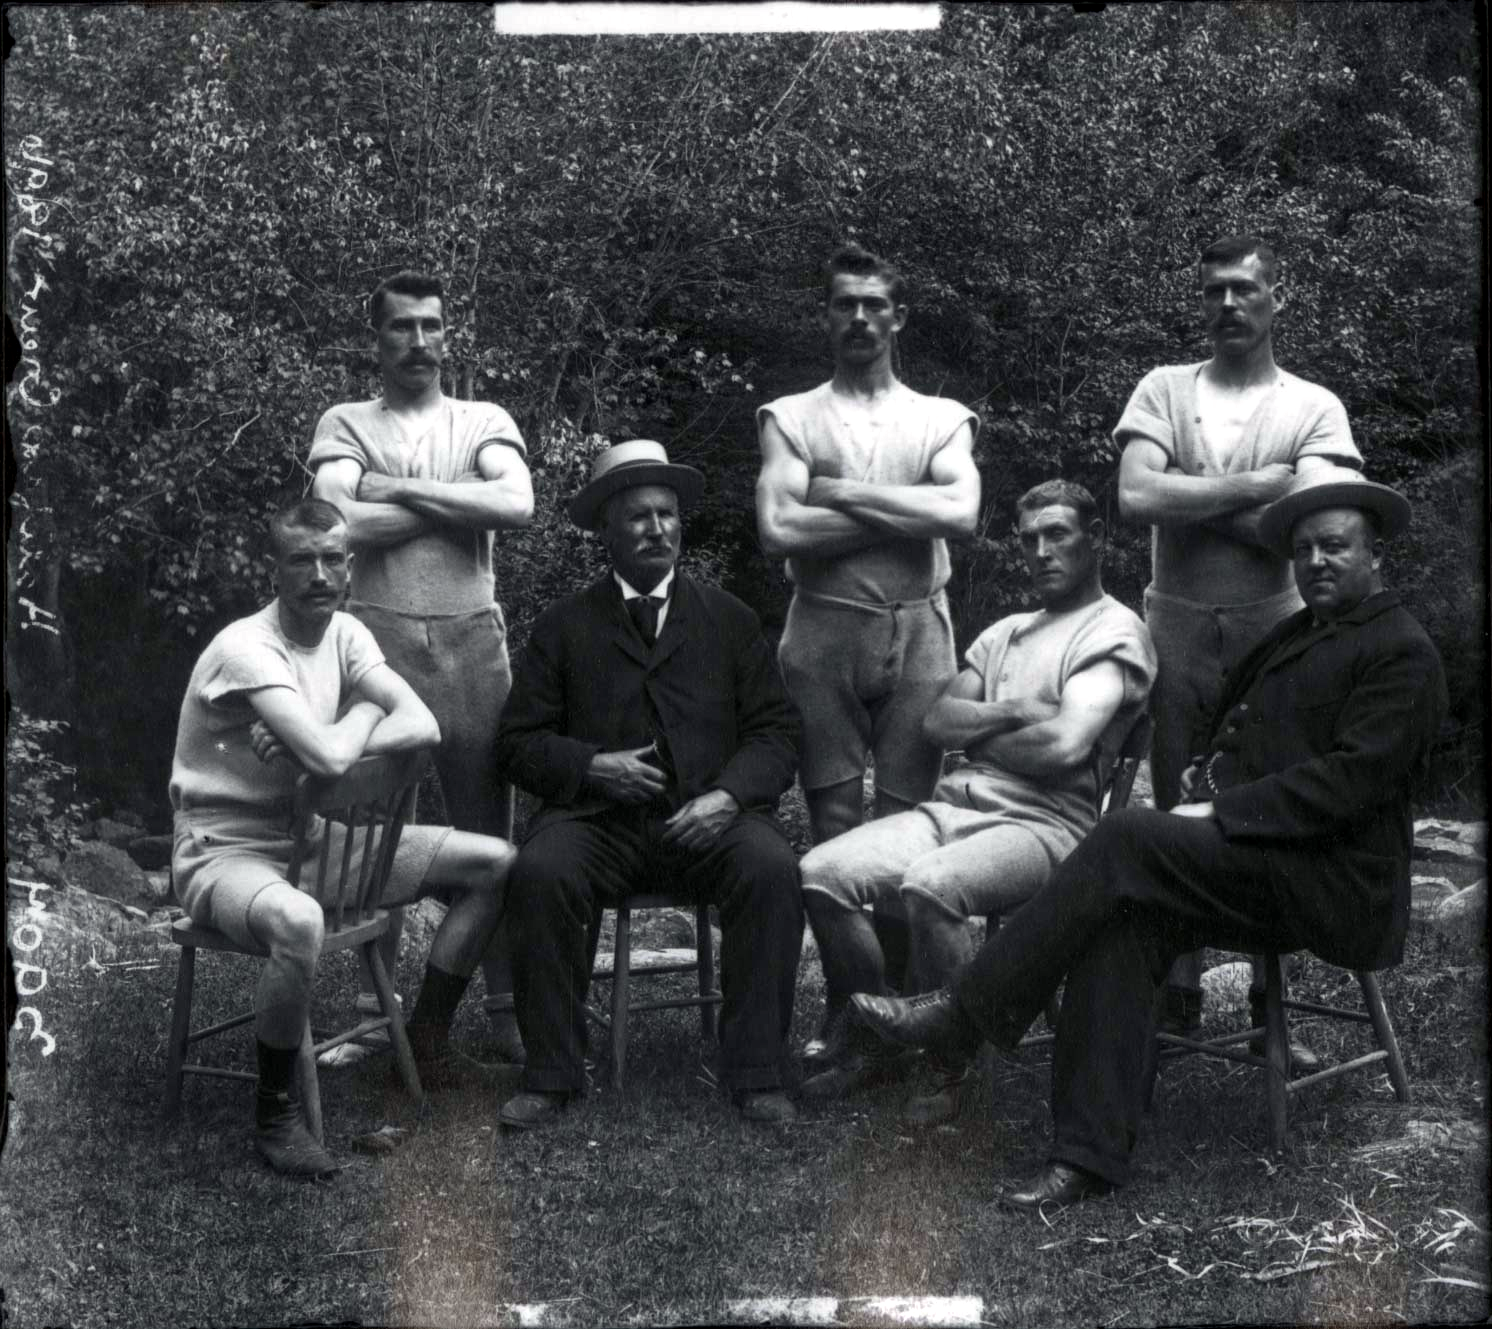 TheHFX rowing crew in 1896: original game face.